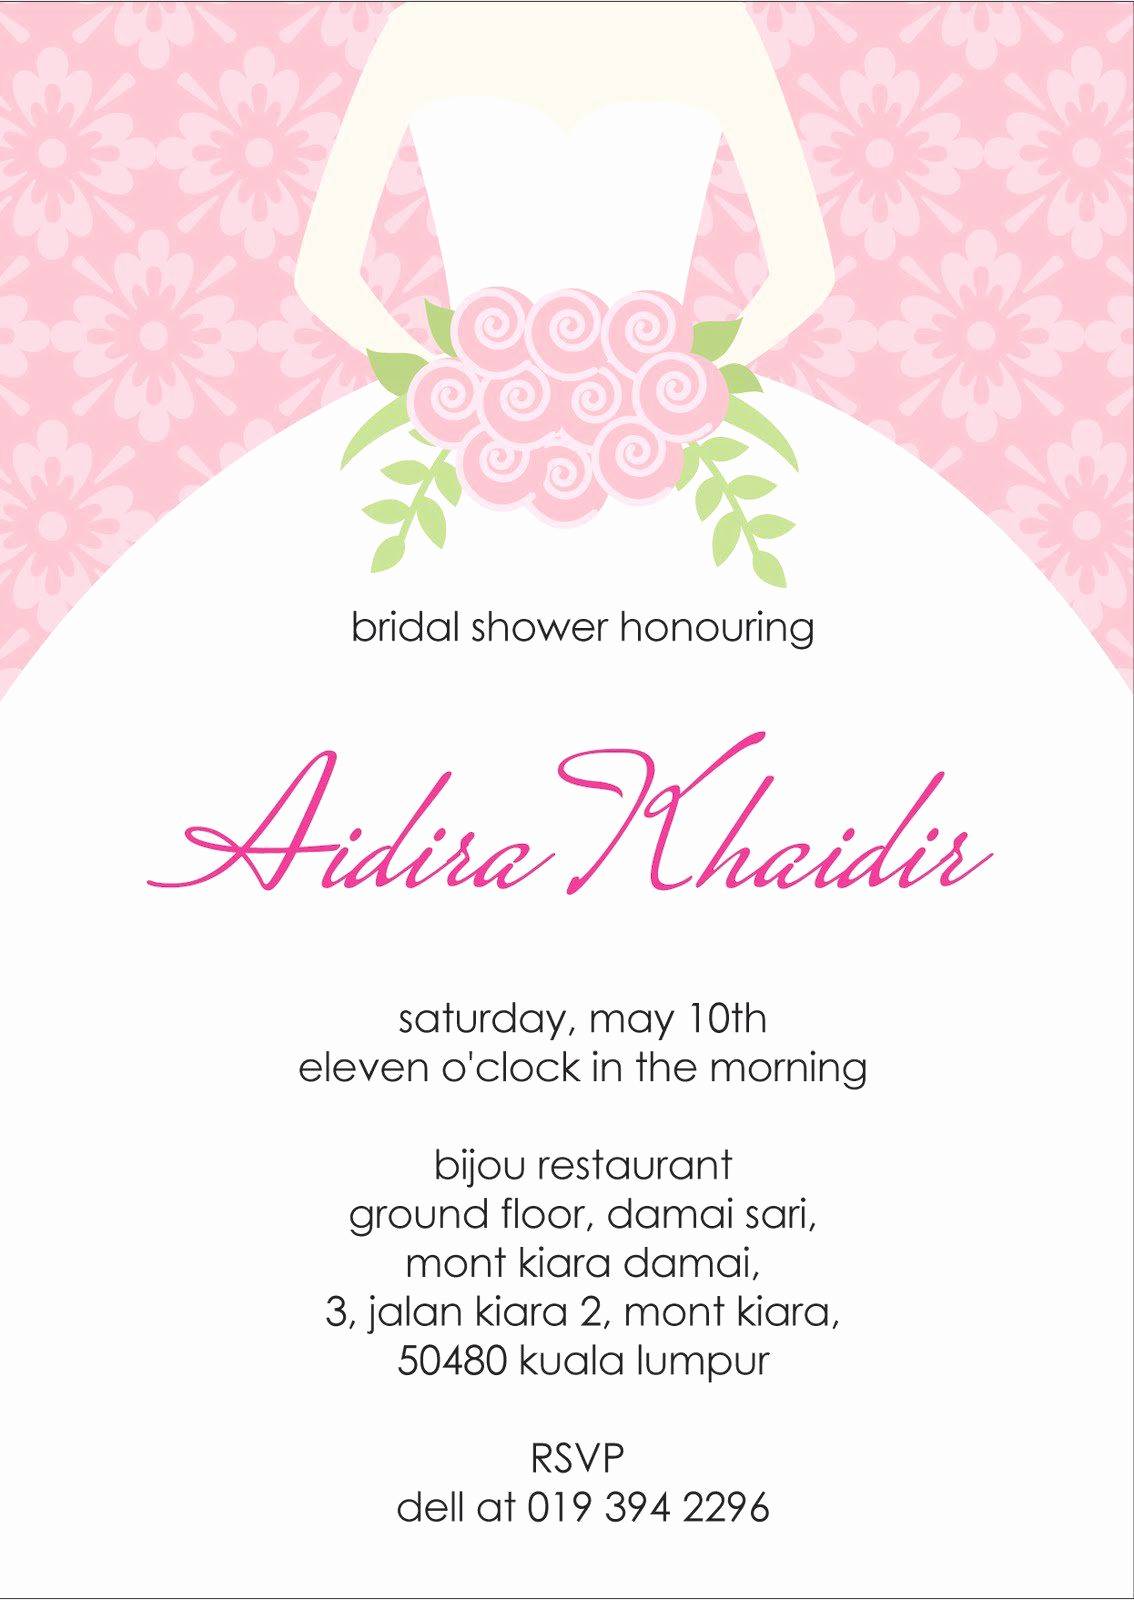 Potluck Bridal Shower Invitation Wording Unique Bridal Shower Invitation Wording asking for Money